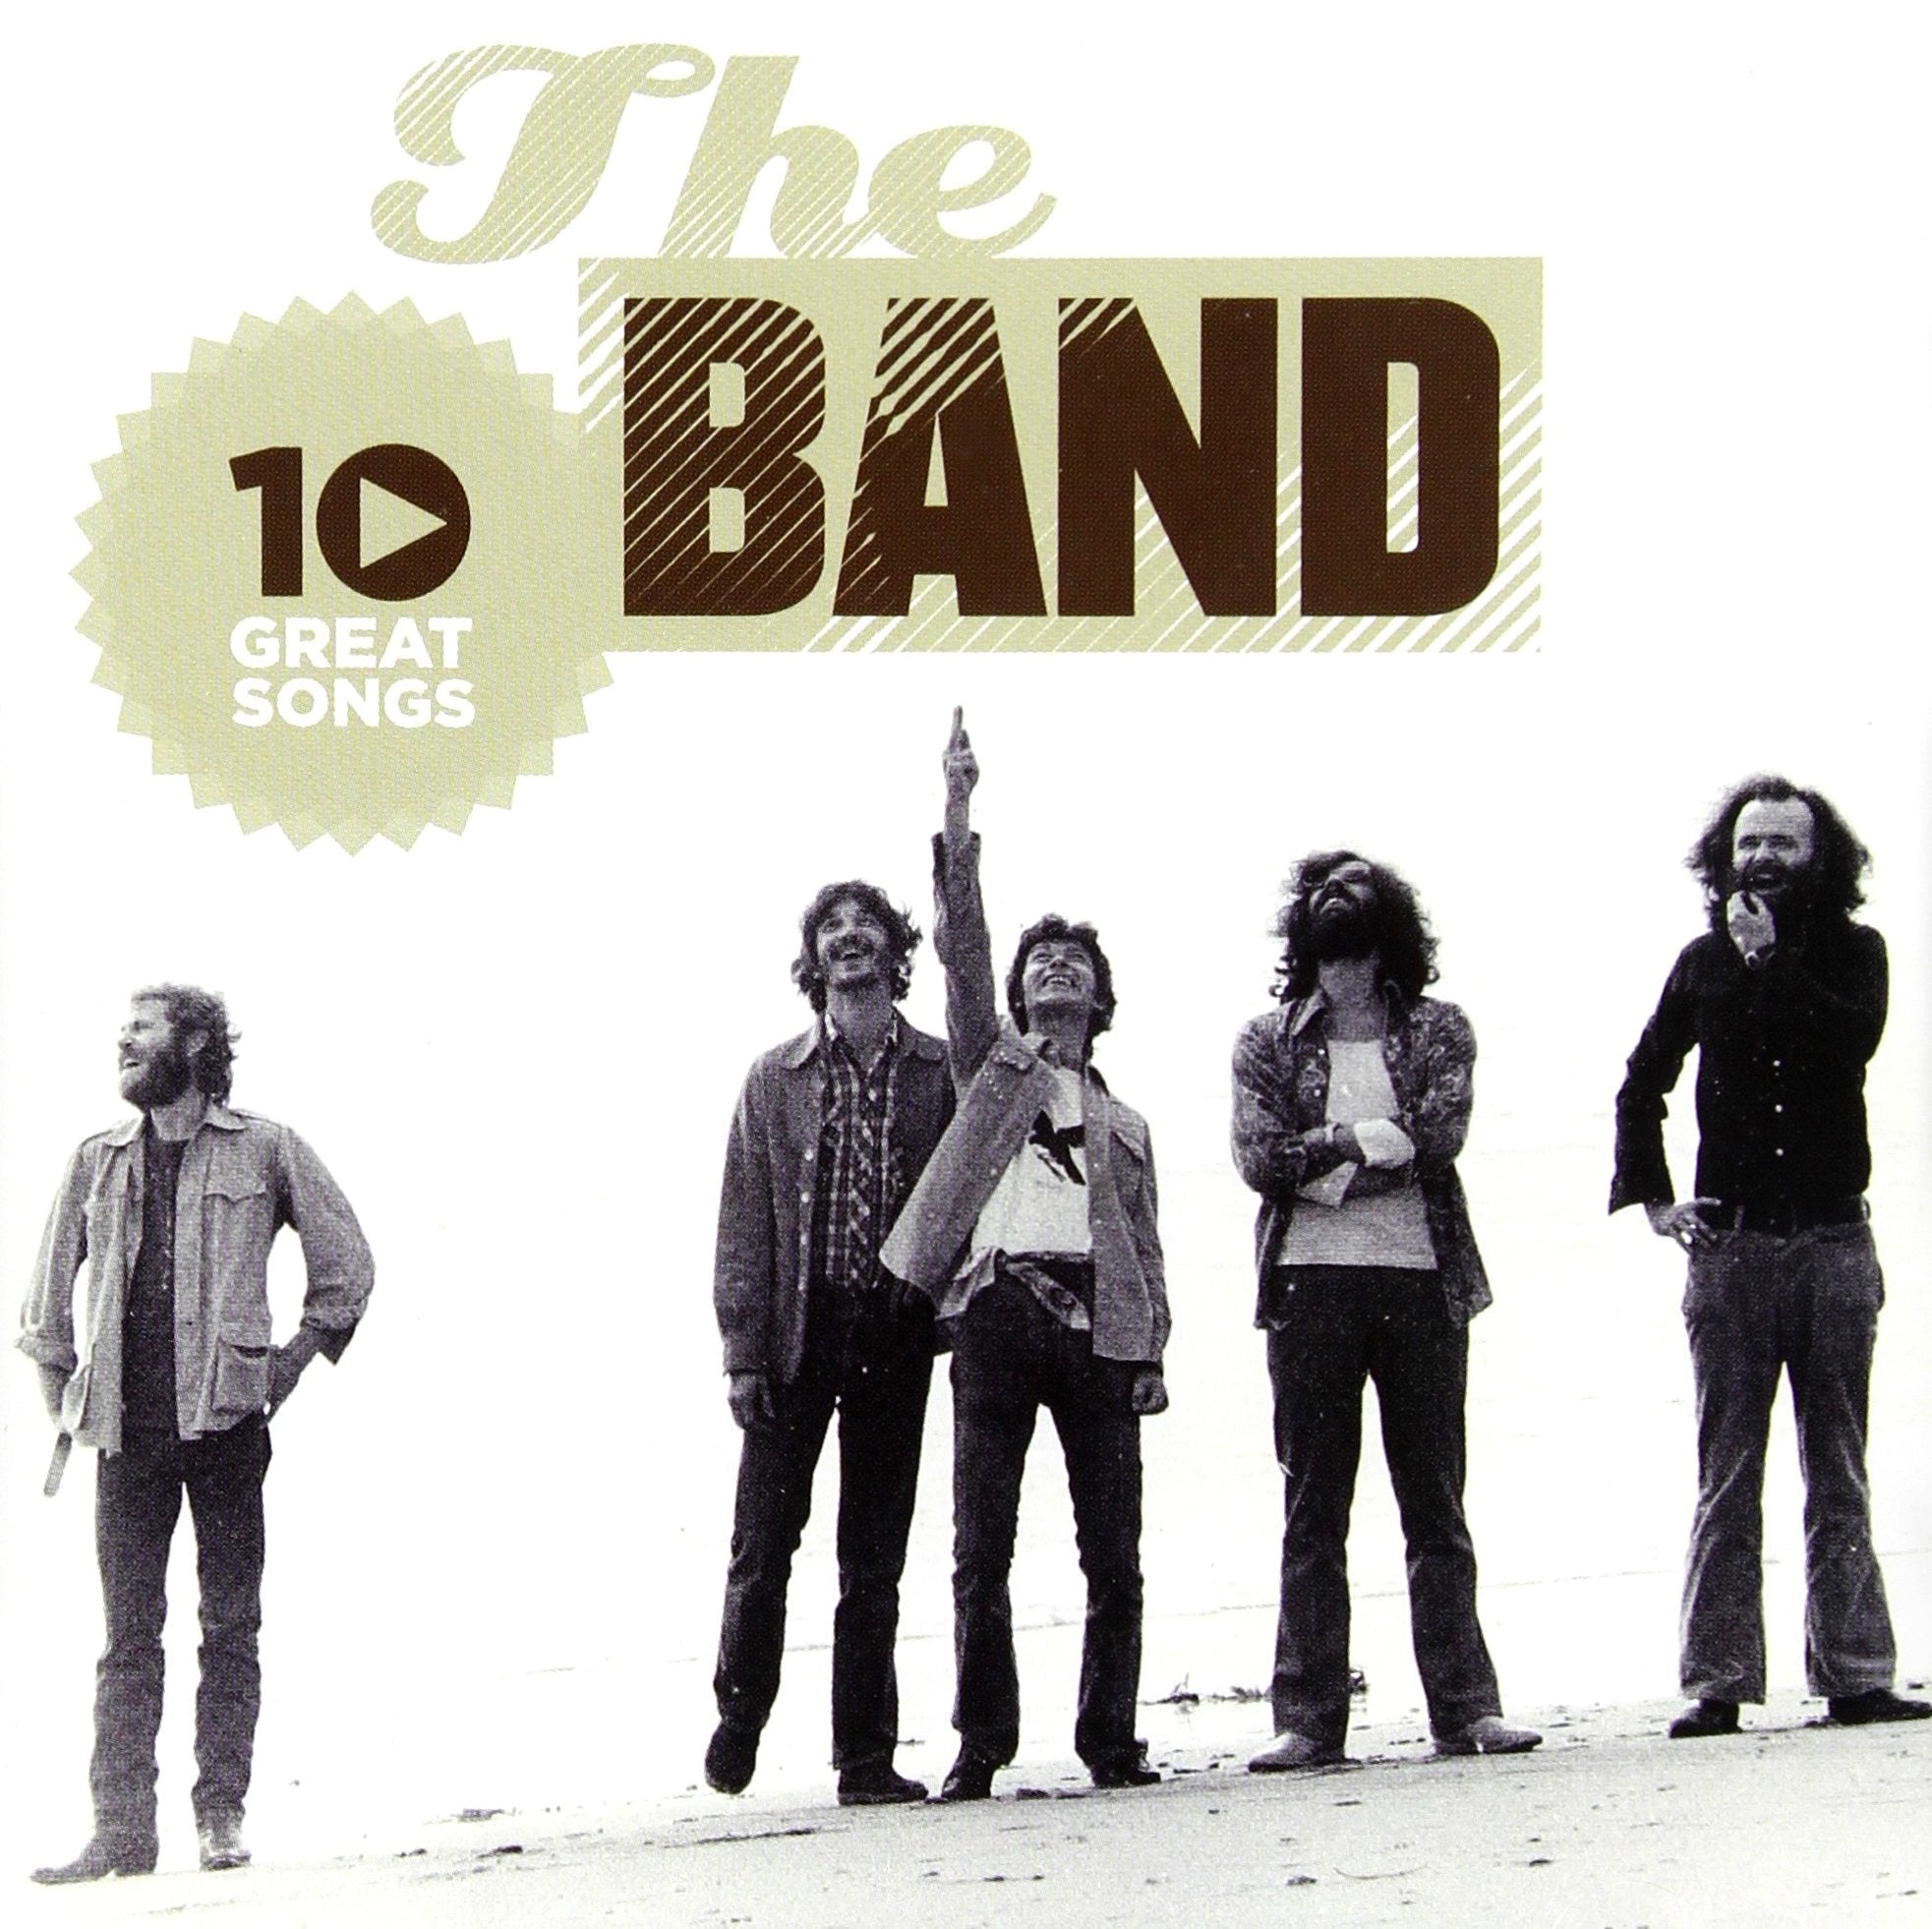 10 Great Songs [Audio CD] Band, The